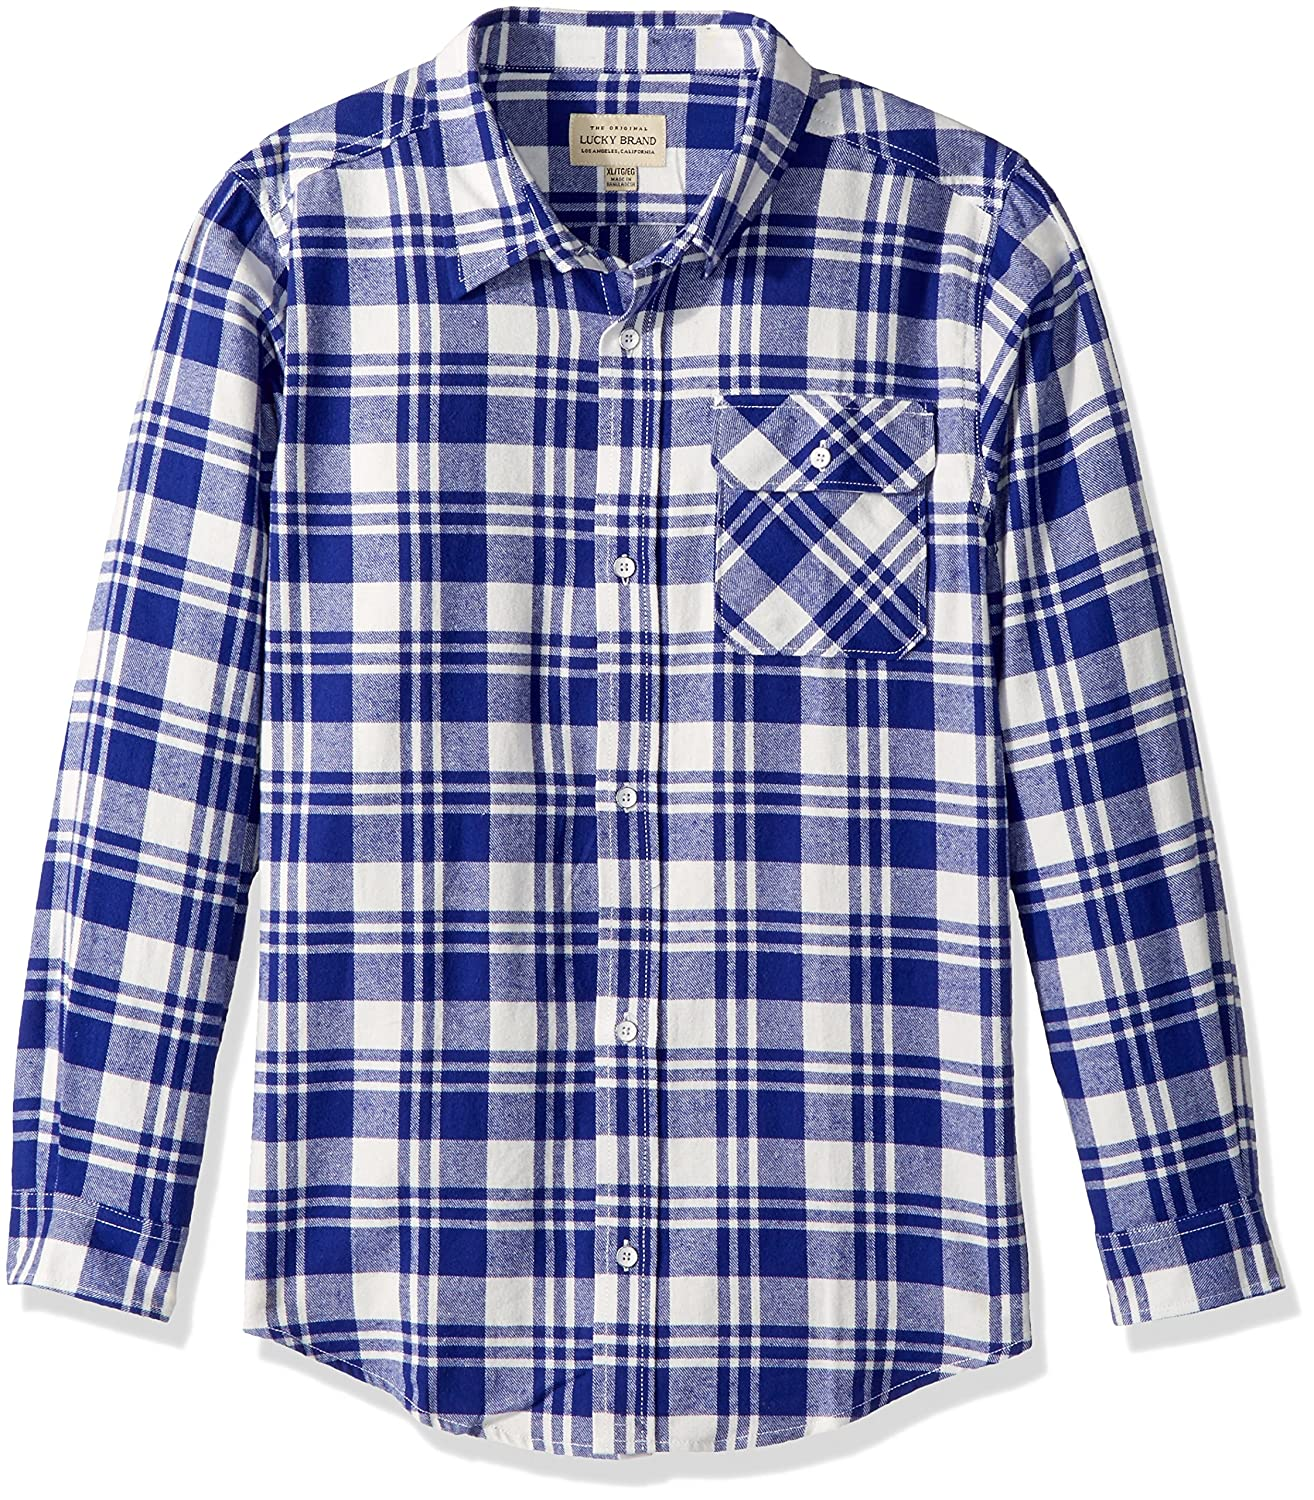 Lucky Brand Baby Boys Long Sleeve Plaid Button Down Shirt